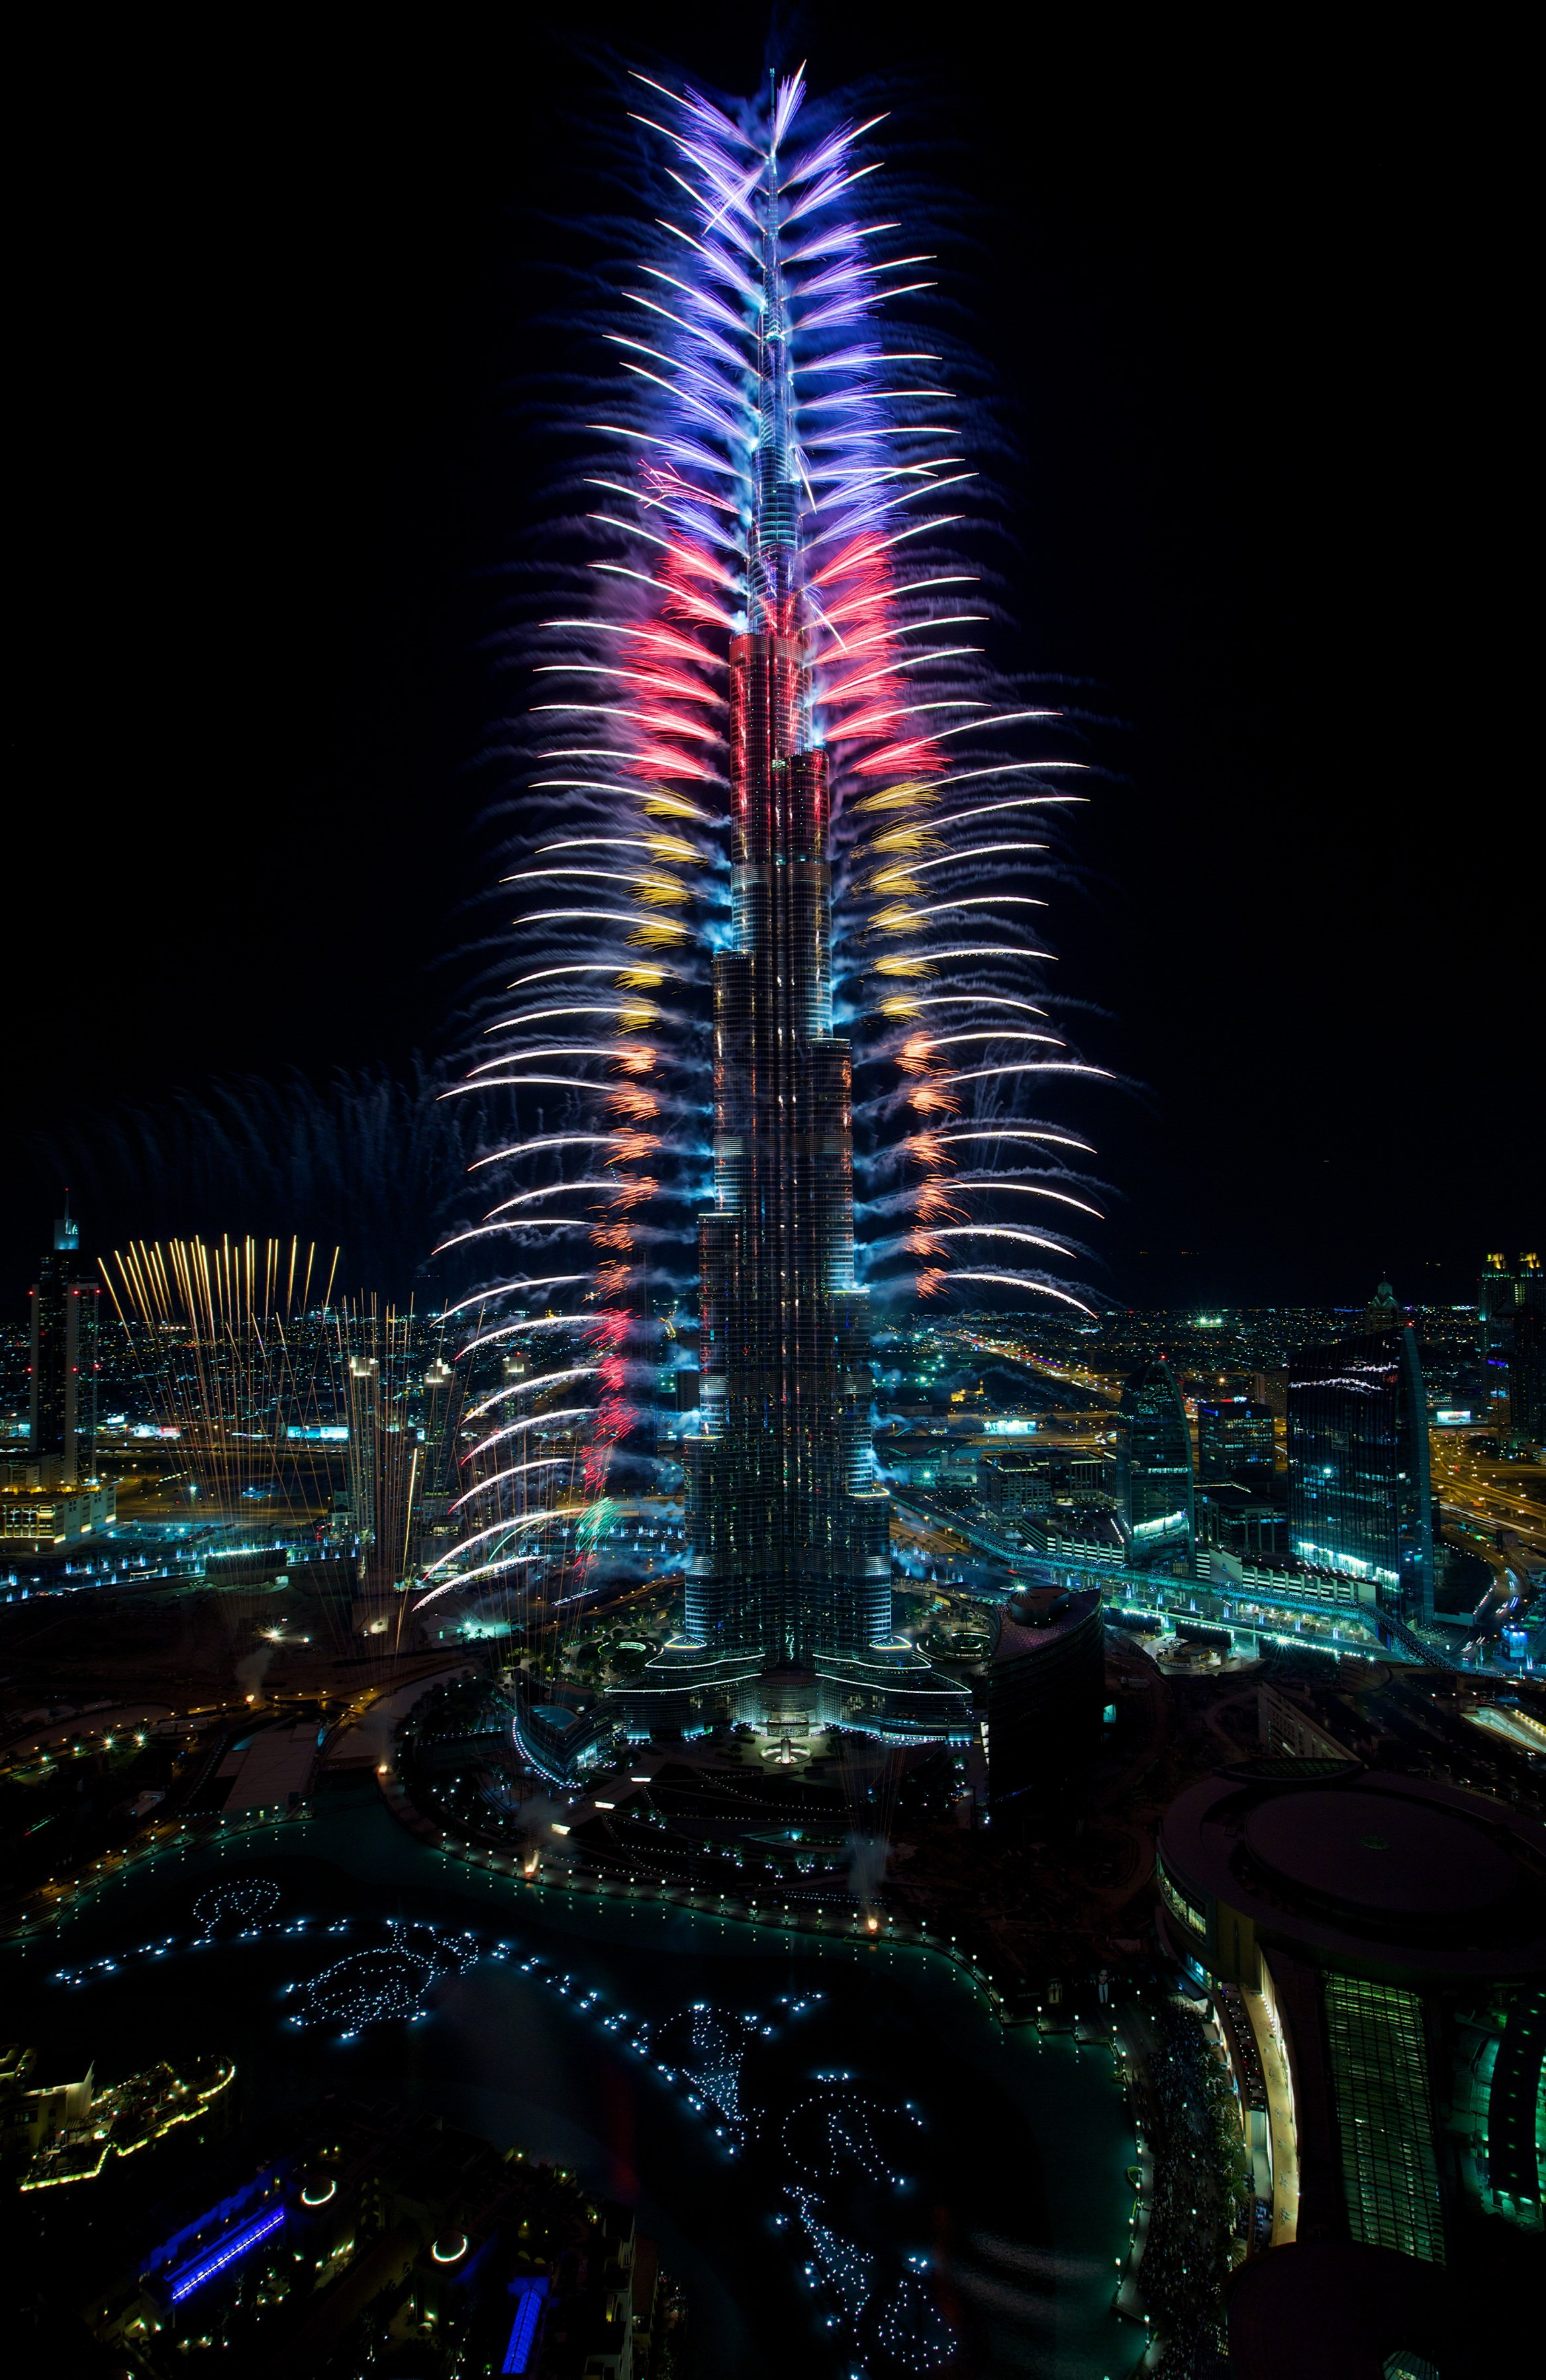 Hd Wallpaper Diwali Light Dubai S Skyline Of Icons Light Up To Celebrate The End Of